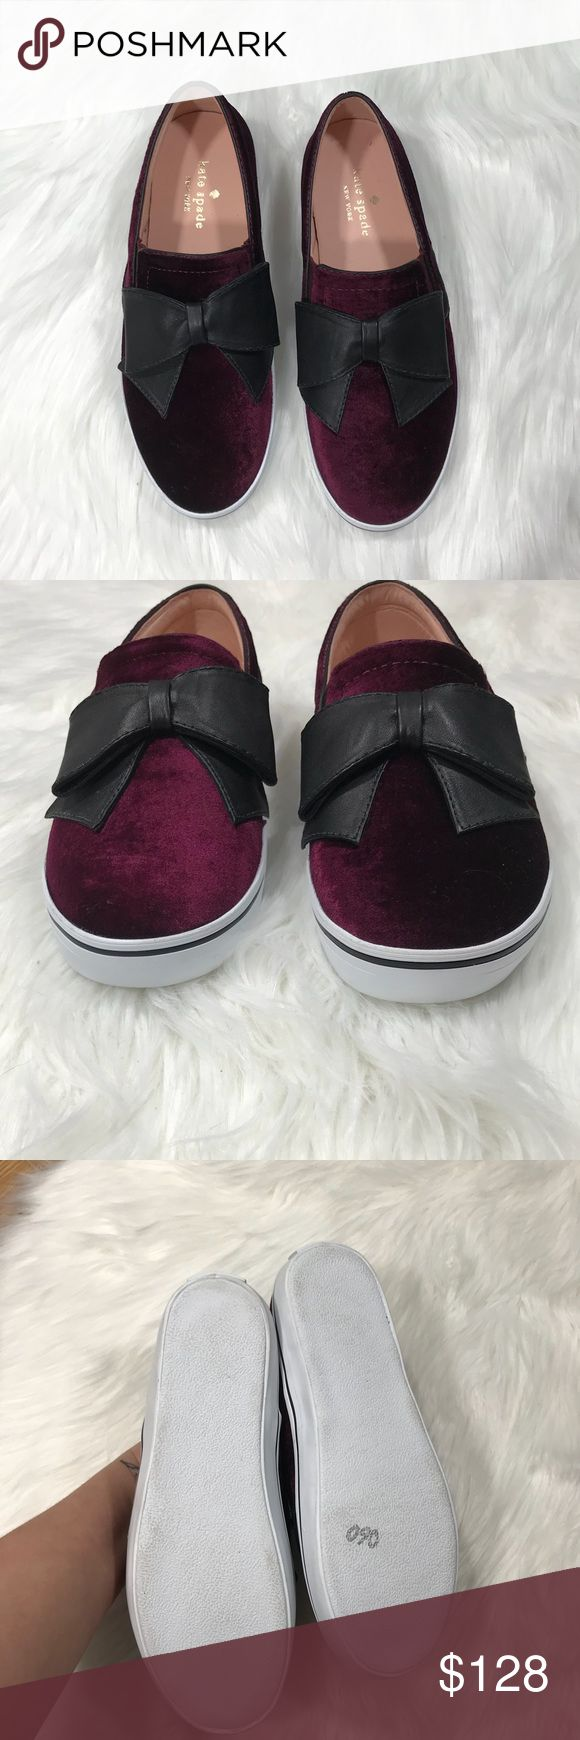 Kate Spade NWOT Delise Too Velvet Sneakers Brand new, never worn. Doesn't included tag or box. Slip on sneaker style. Has a couple of storage marks from being tried on in store. Has a leather and elastic upper, leather lining and rubber sole.   No trades Bundle all your likes for a private discount kate spade Shoes Sneakers